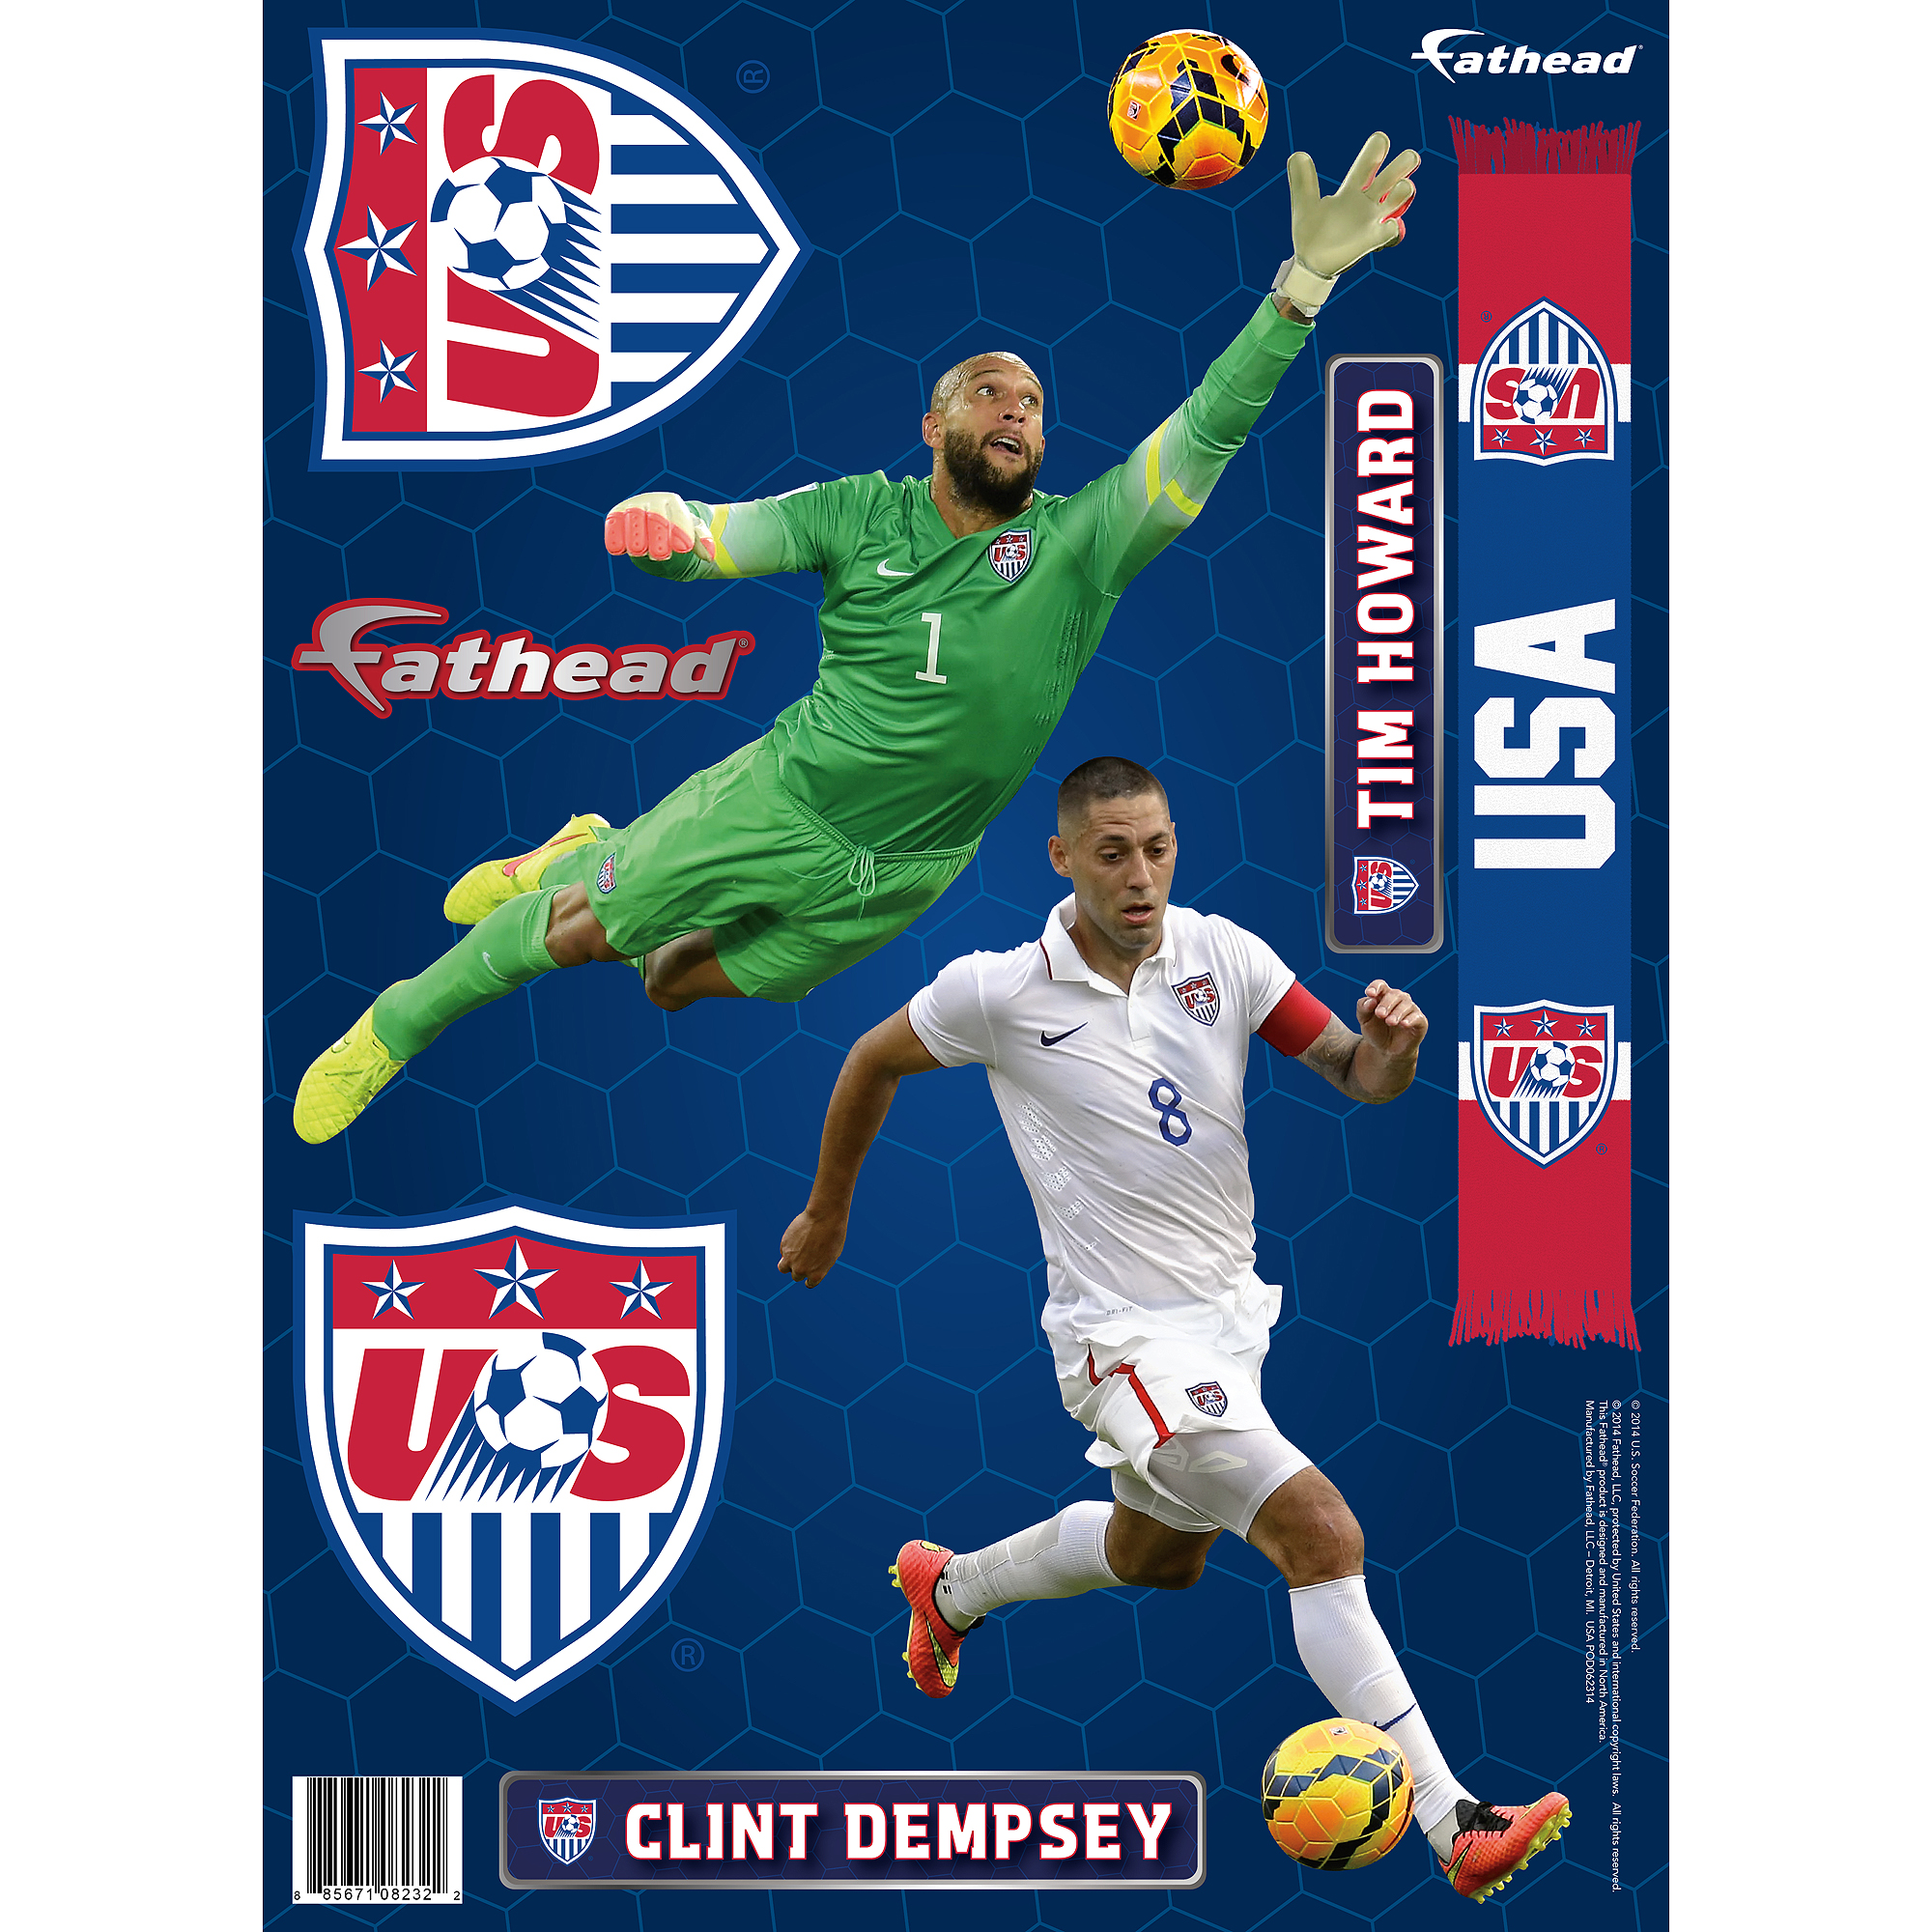 FIFA 15 Fathead Team Pack - Walmart Exclusive (Universal)